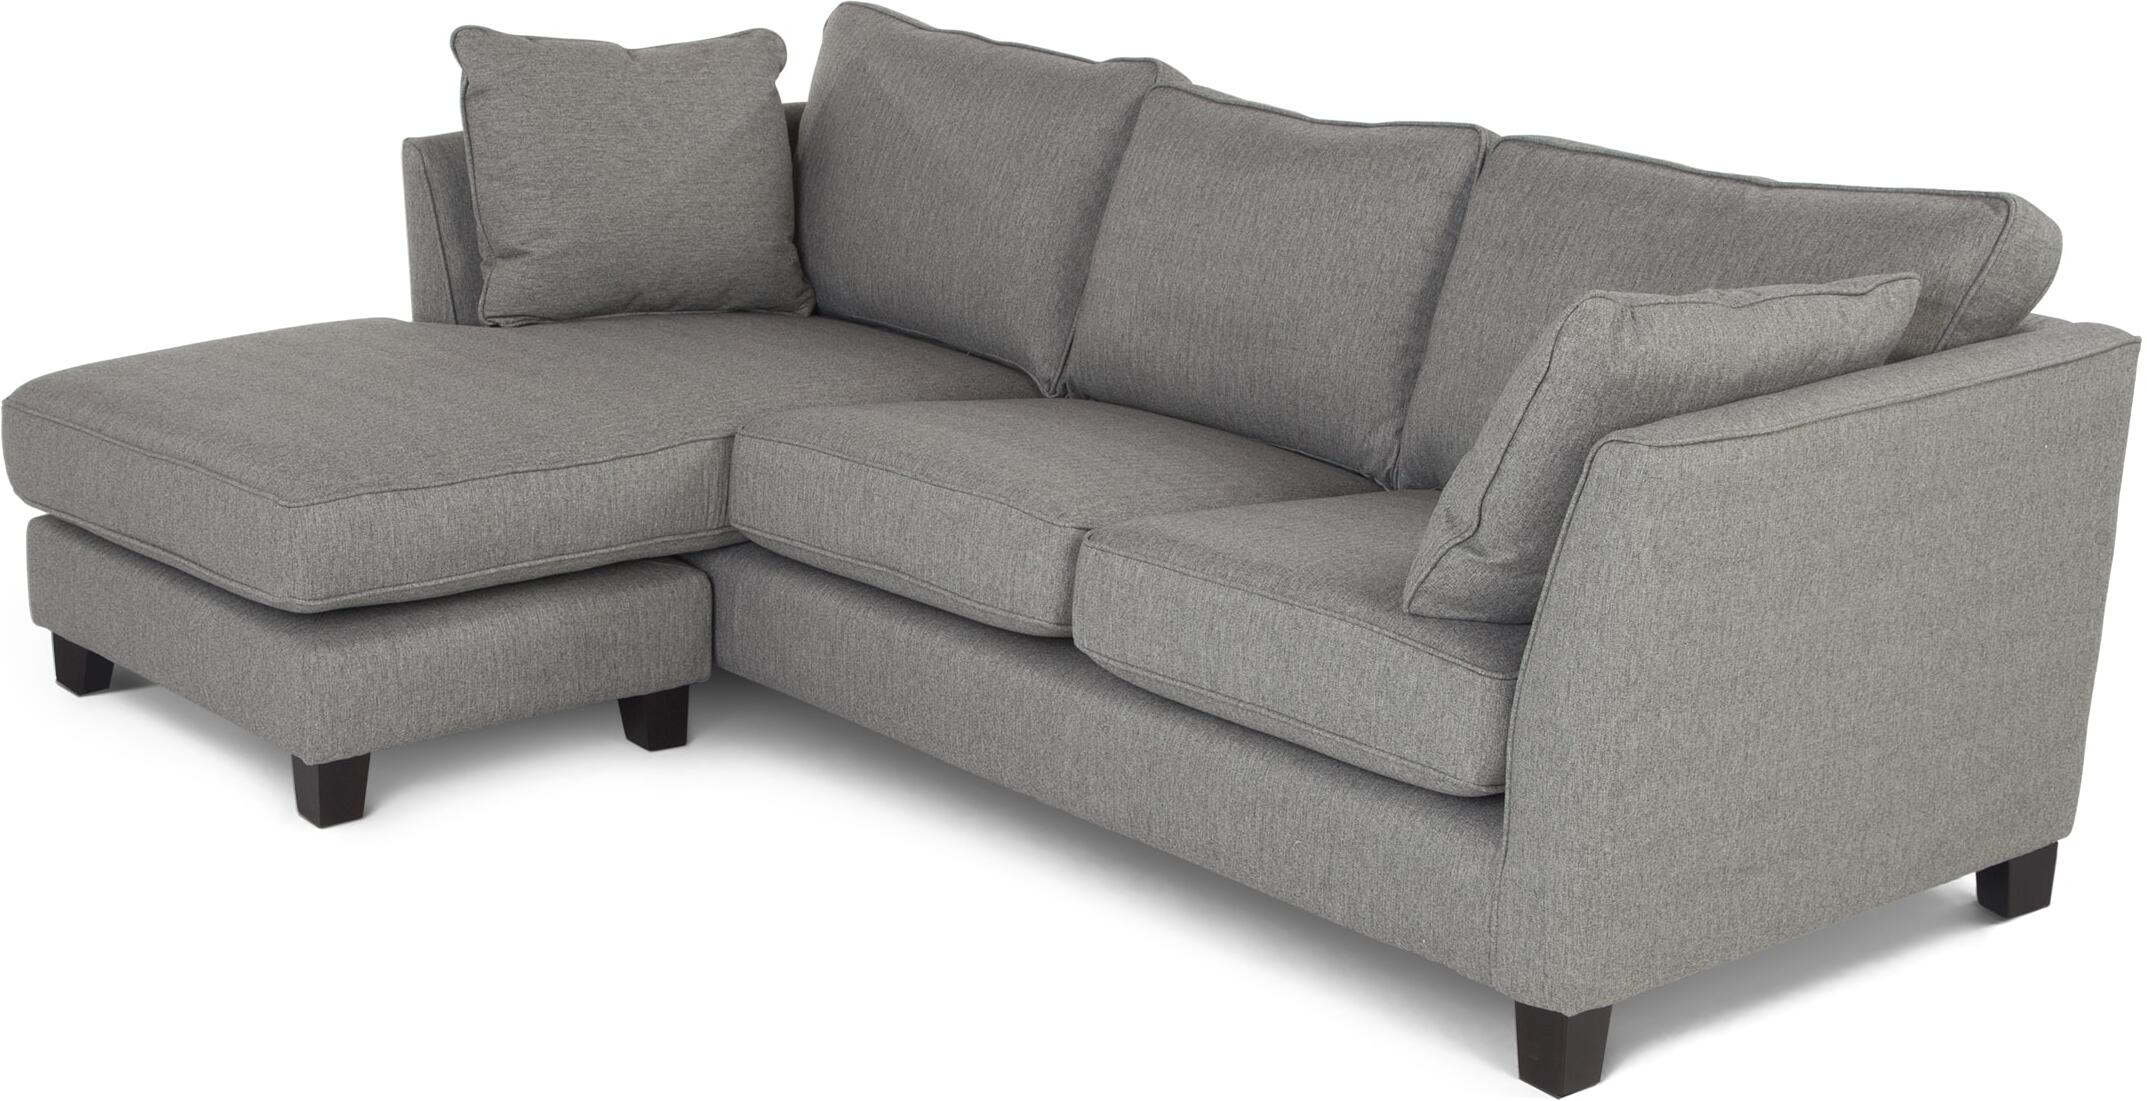 Wolseley Large corner sofa sofa Herringbone Marl Grey